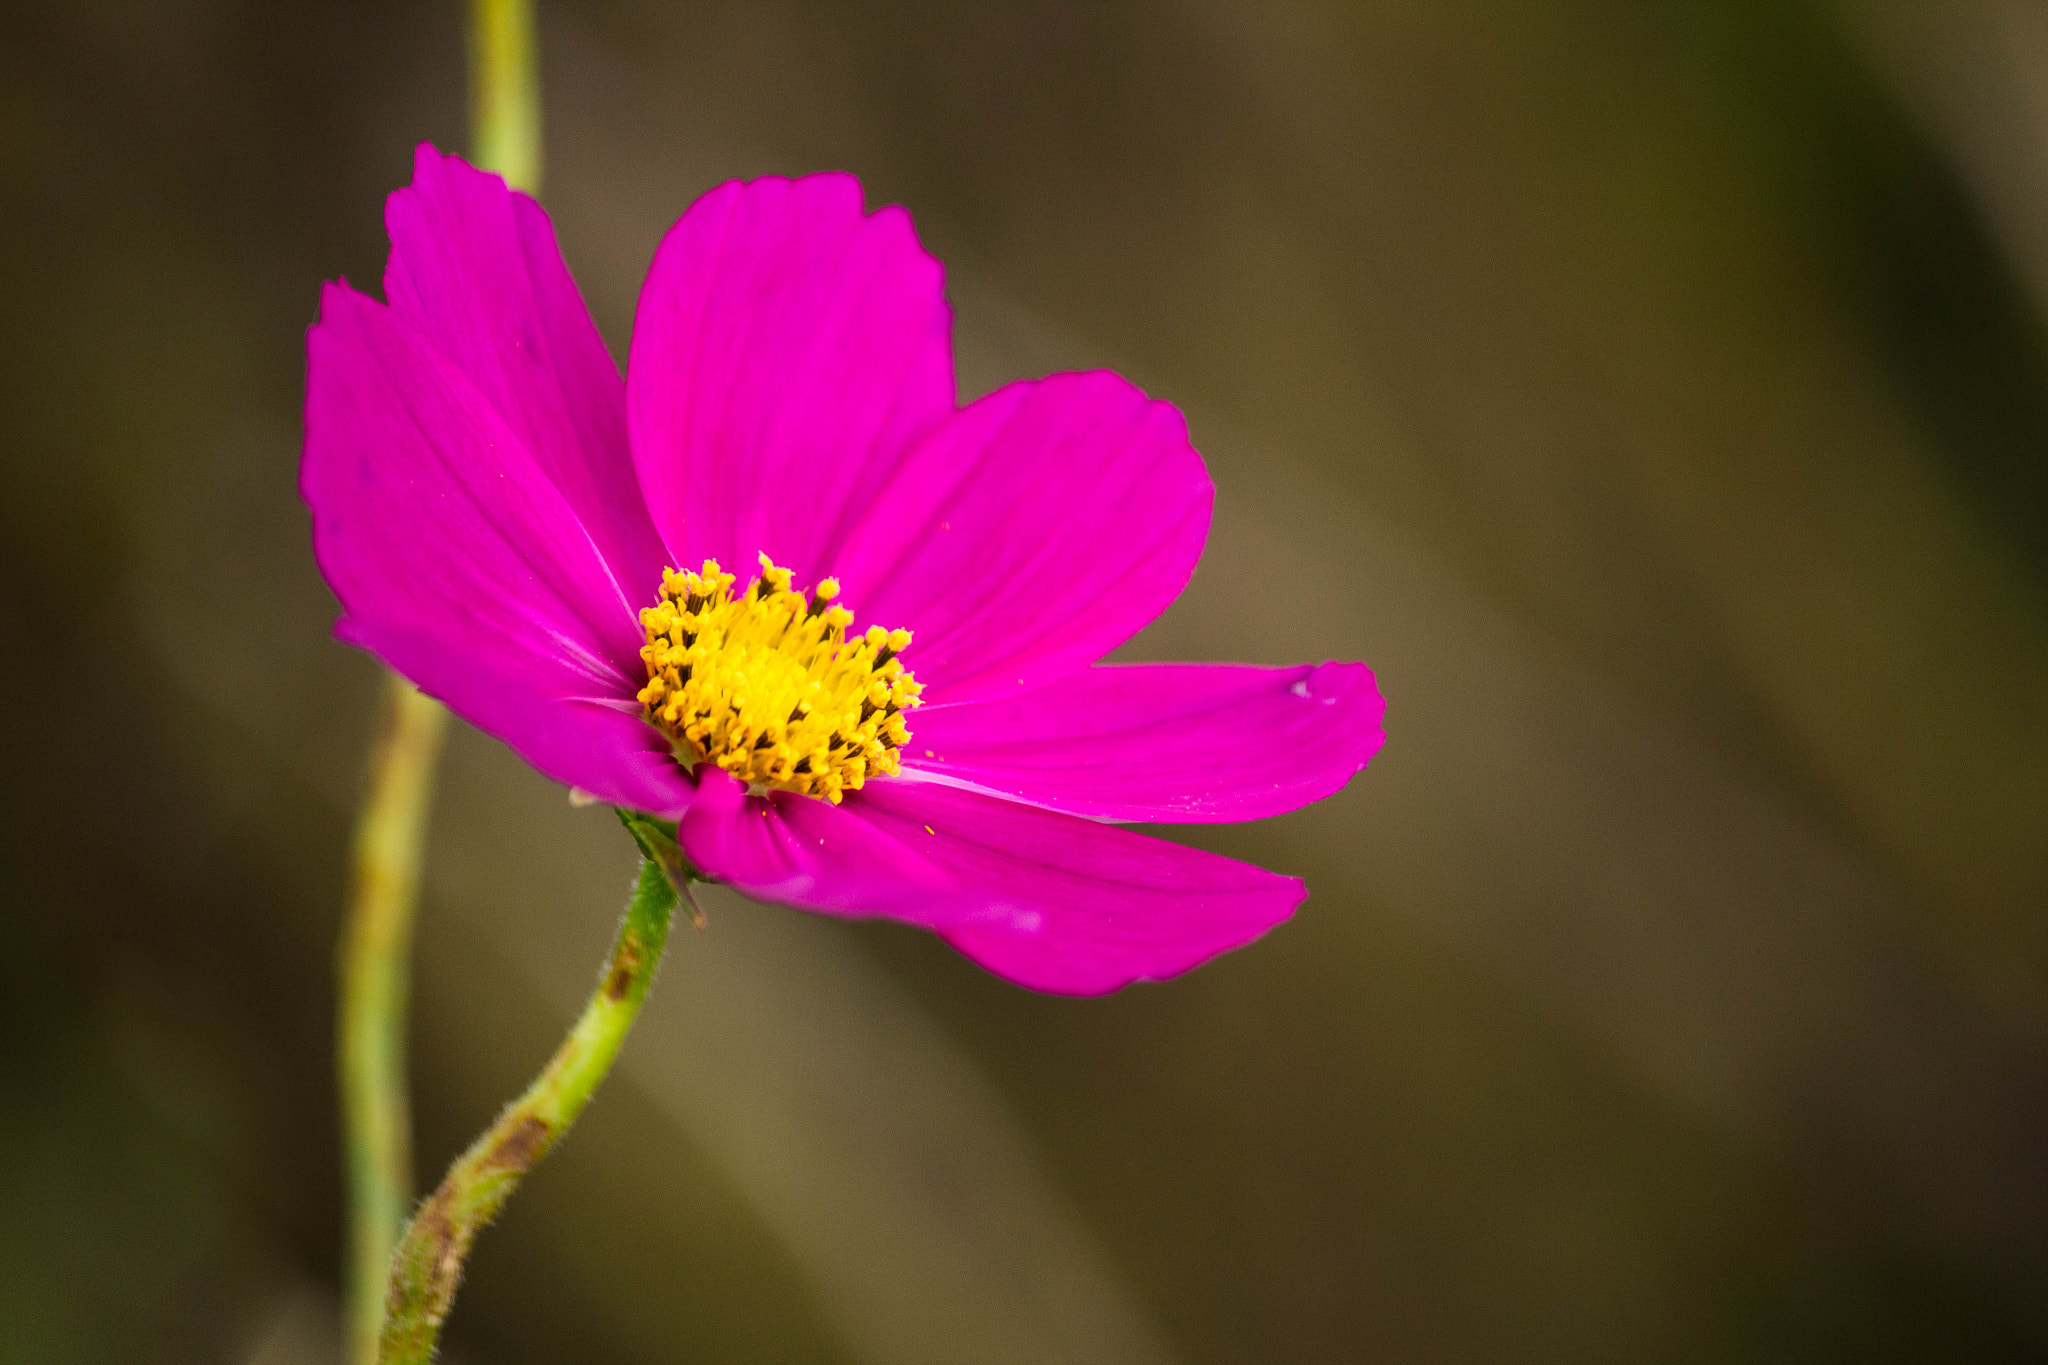 Photograph PINK by Eakkapon Wipobpat on 500px